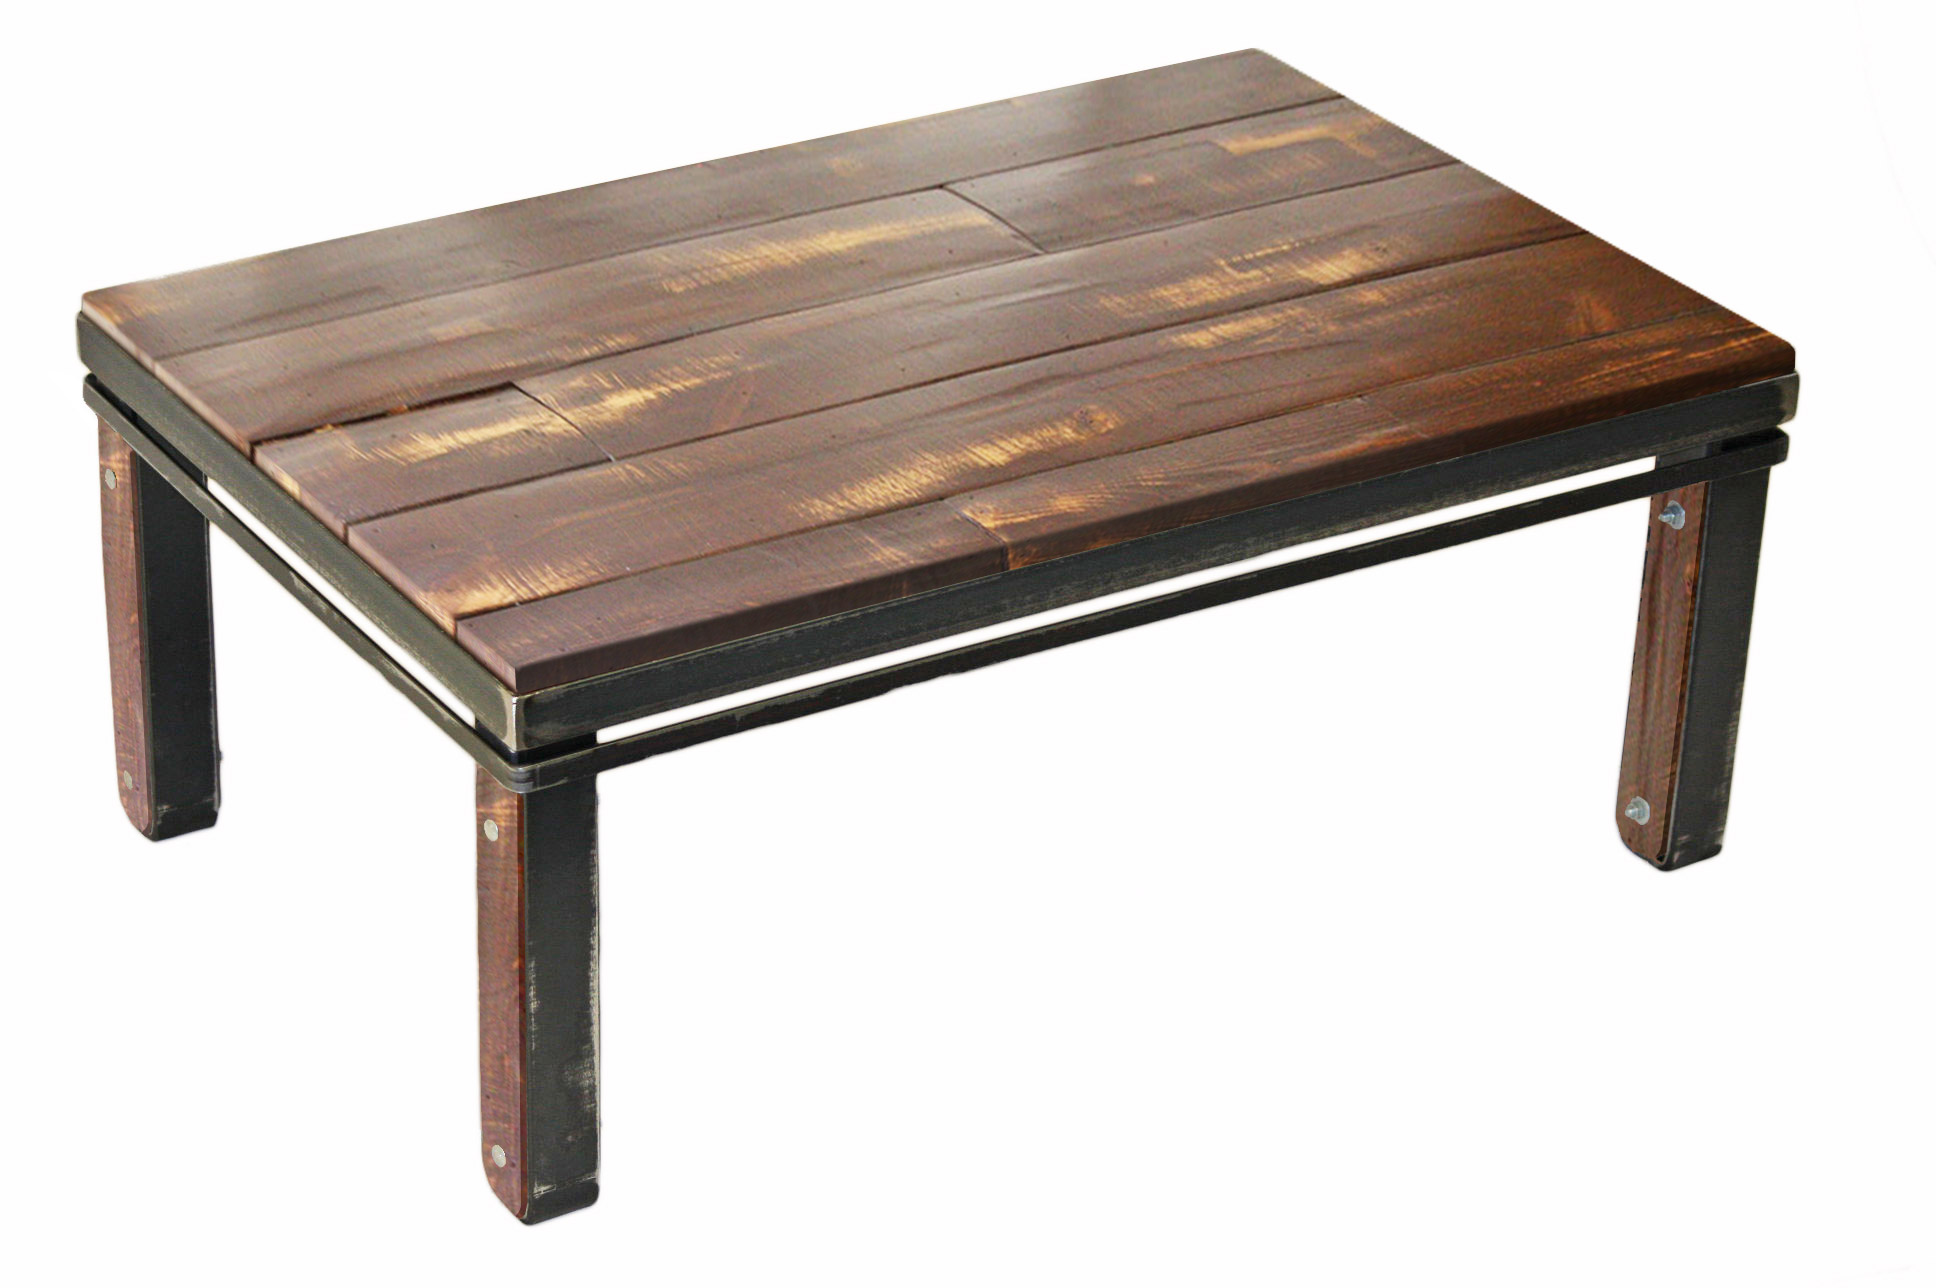 COFFE TABLE RECLAIMED WOOD